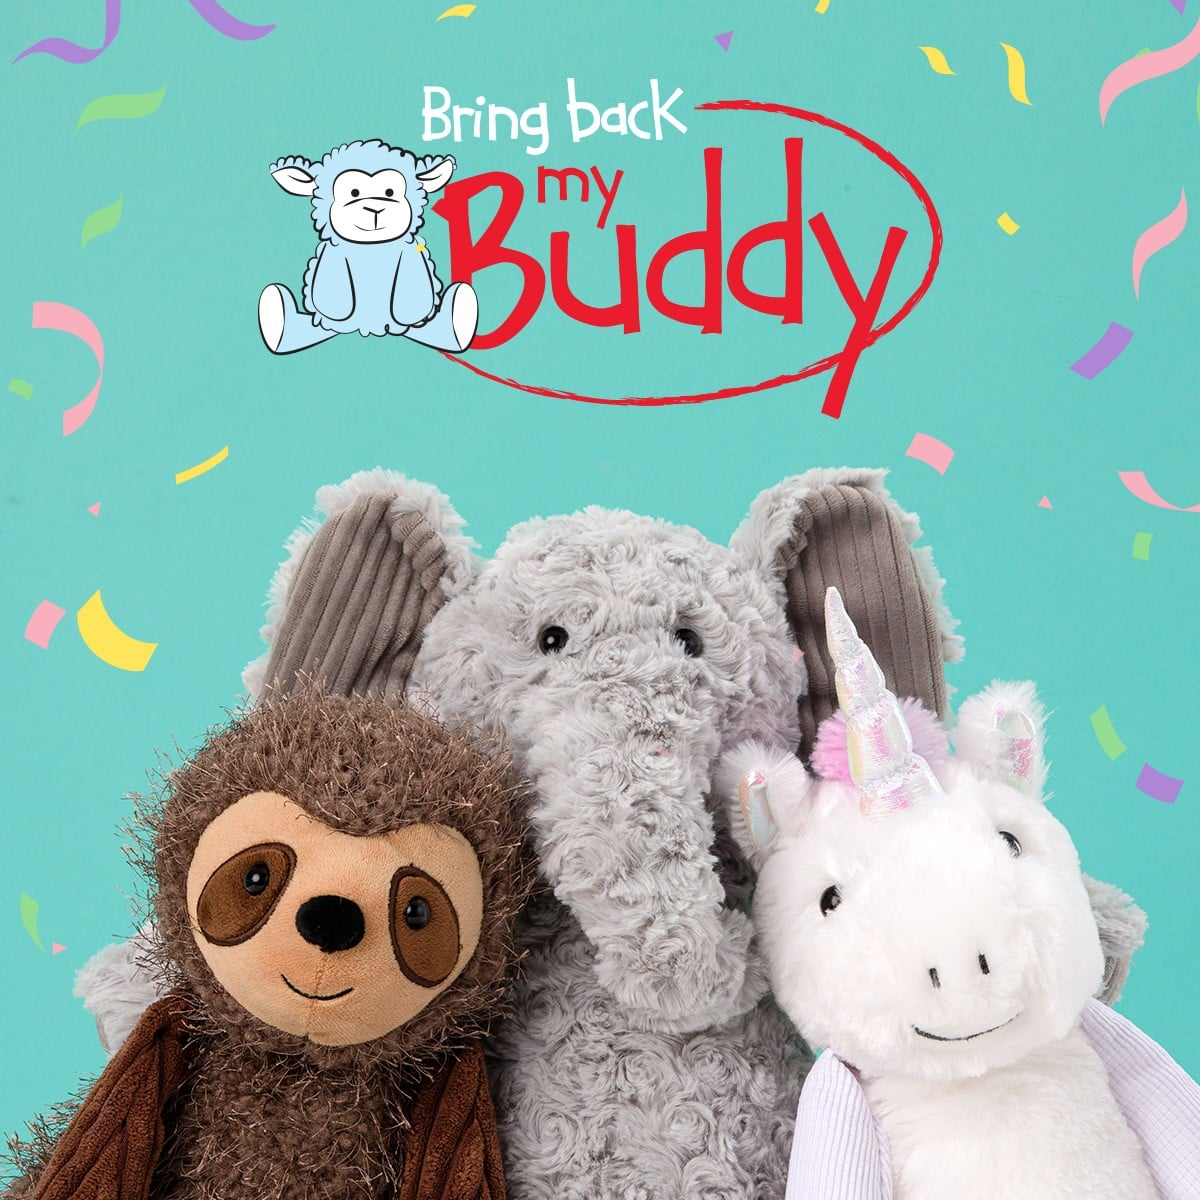 SCENTSY BRING BACK MY BUDDY | SHOP OCTOBER 12, 2020